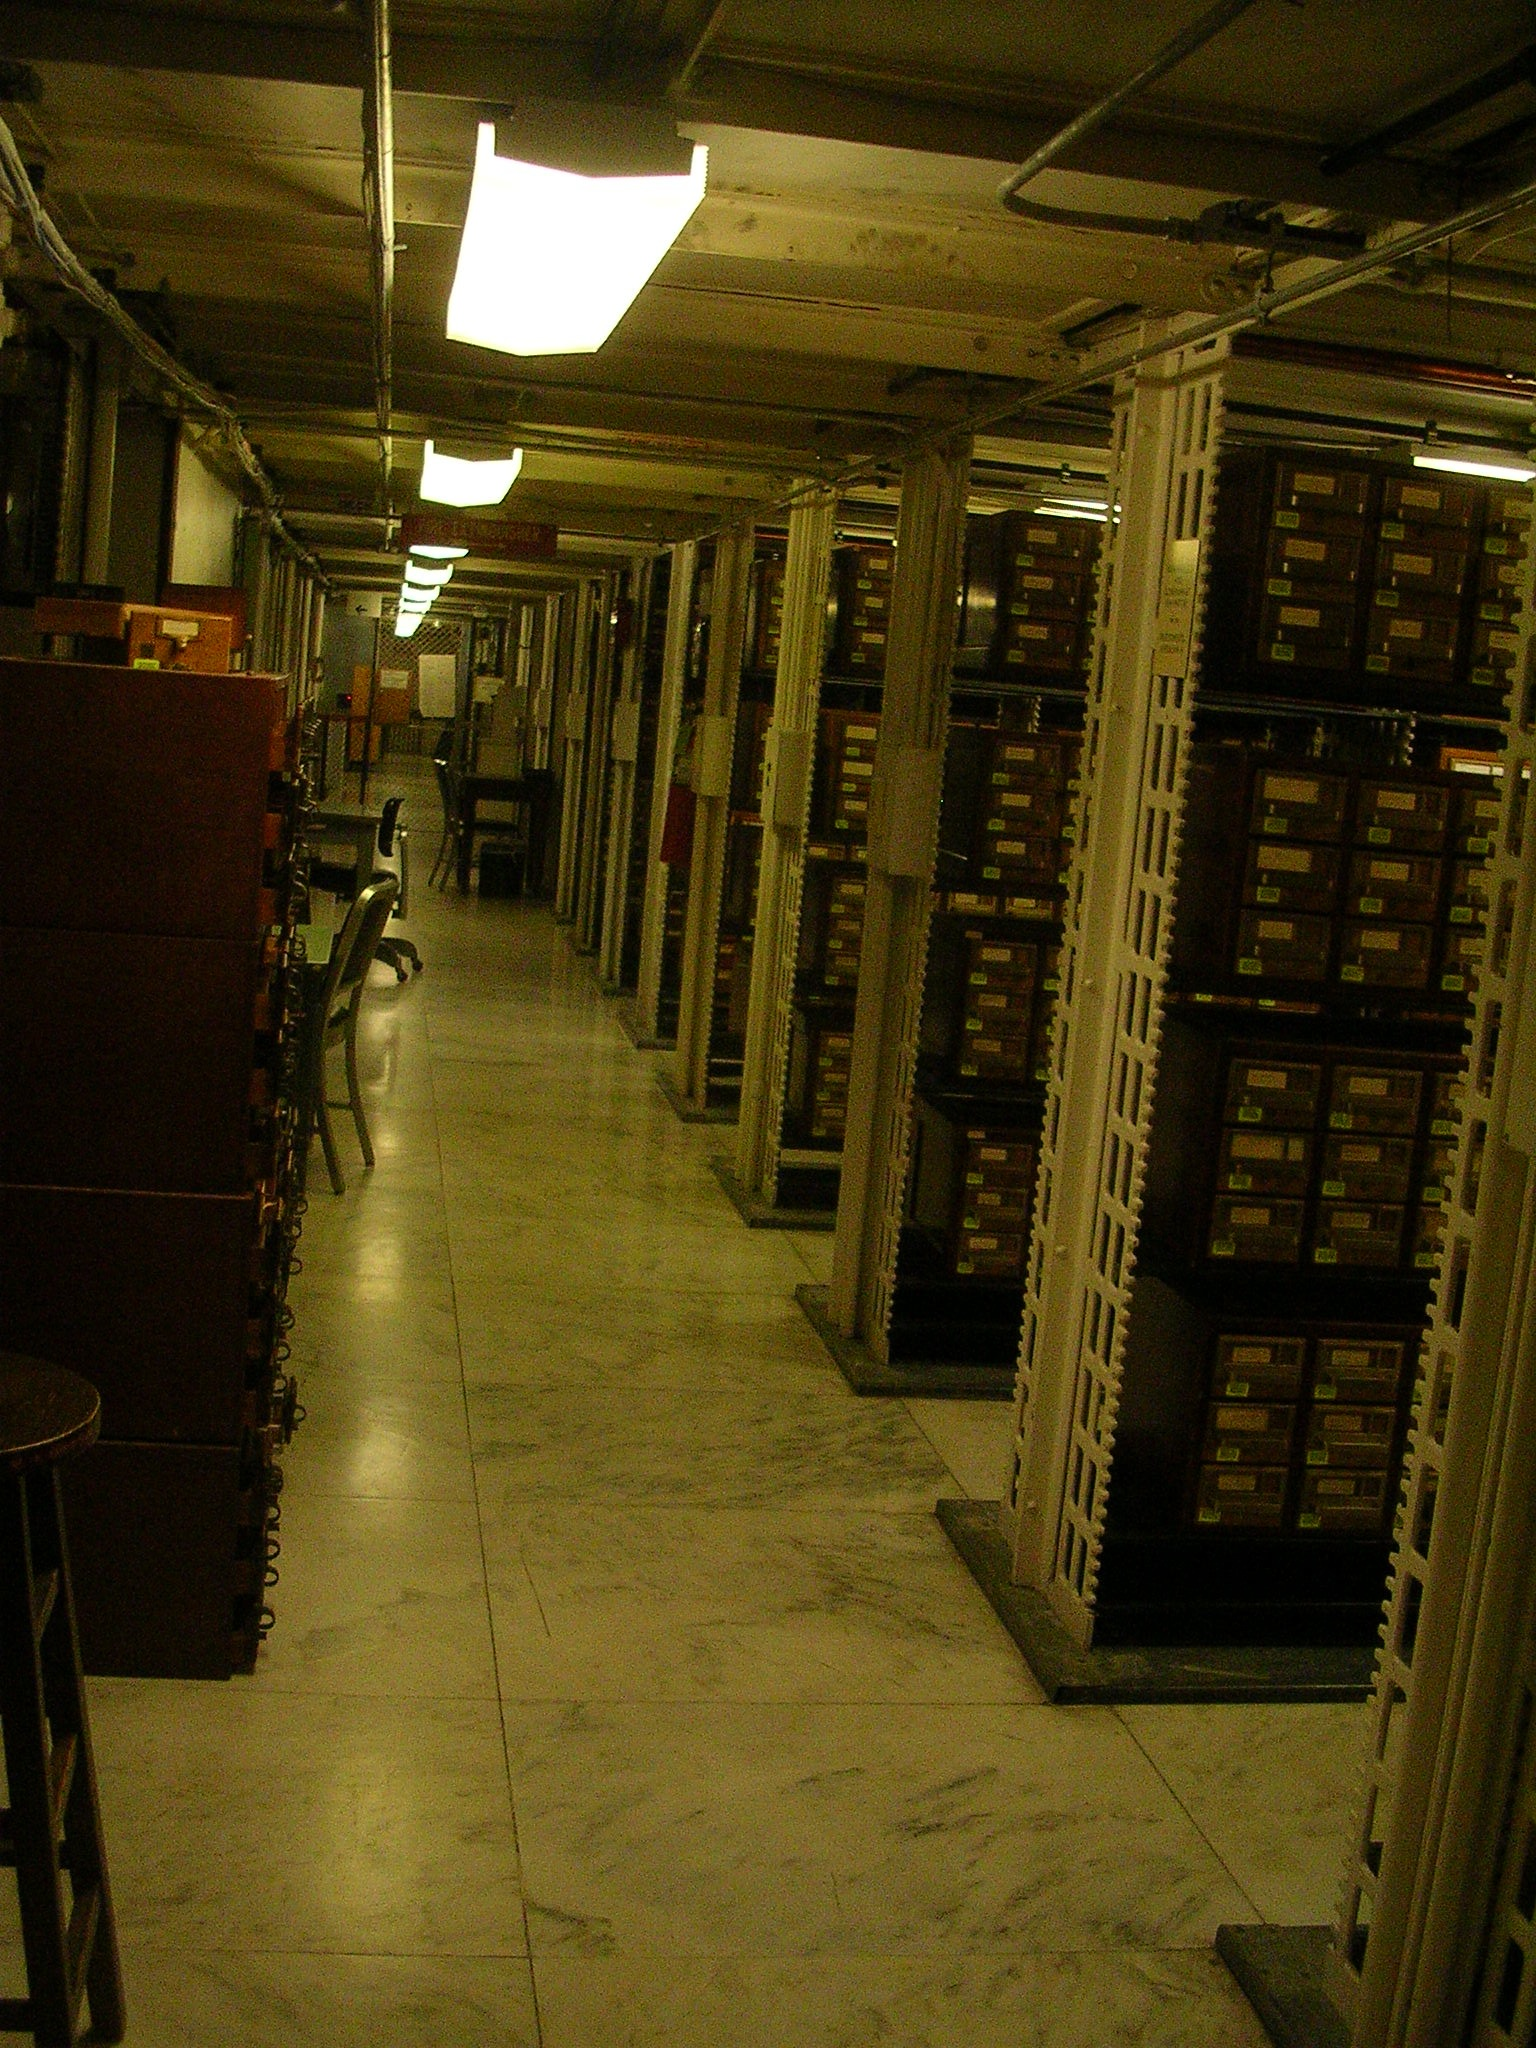 File Card Catalogs In The Basement Of The Library Of